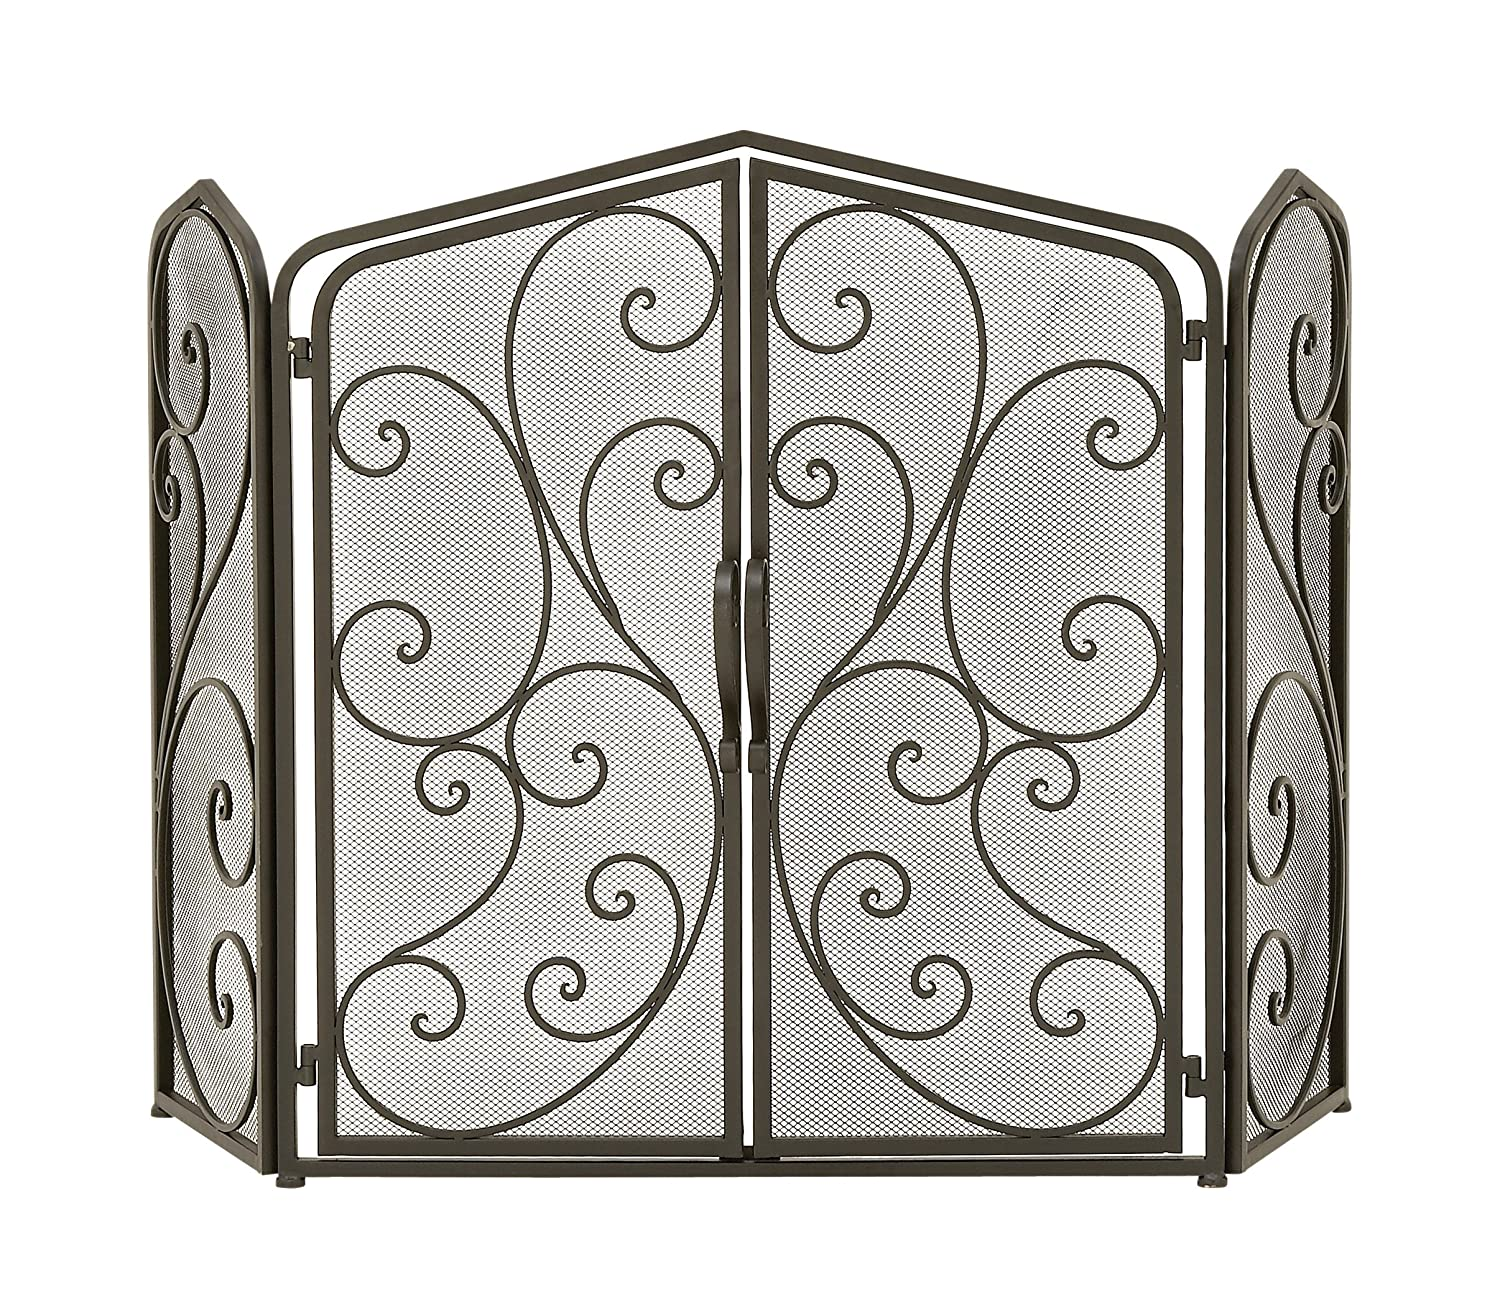 Traditional 30 x 46 Inch Rectangular Black Tin Scrollwork on Mesh Design 3-Panel Fire Screen Uma Enterprises 44576